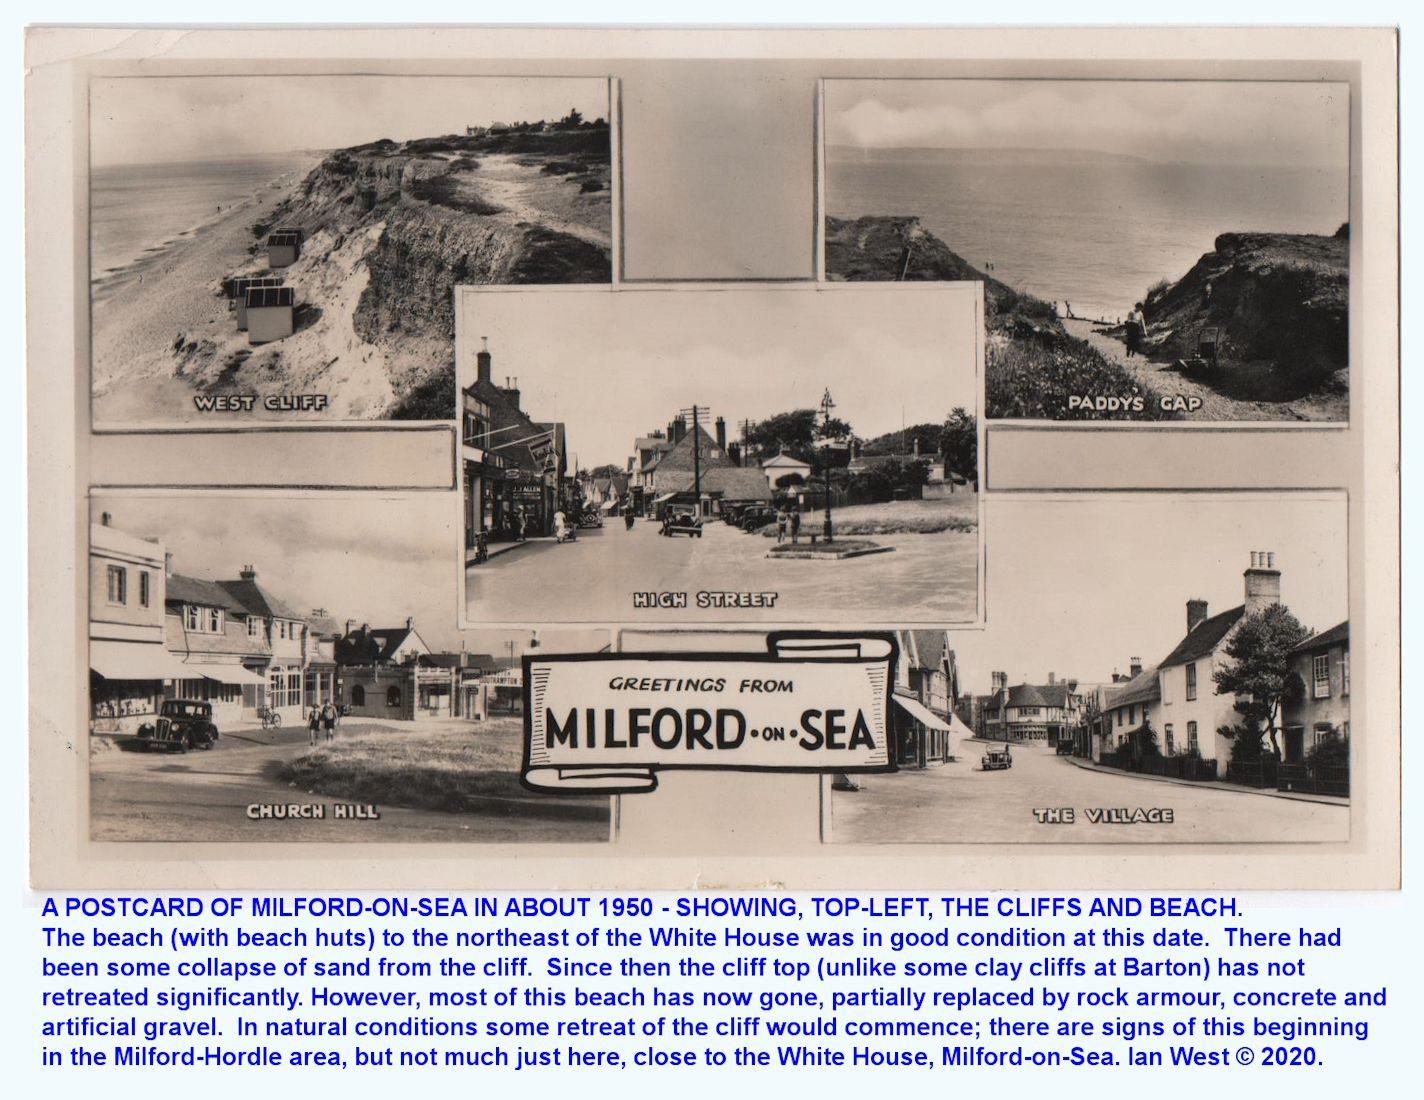 Old postcard views, from about 1950, of Milford-on-Sea, showing in one case, the beach with beach huts which was originally present, almost adjacent to the White House